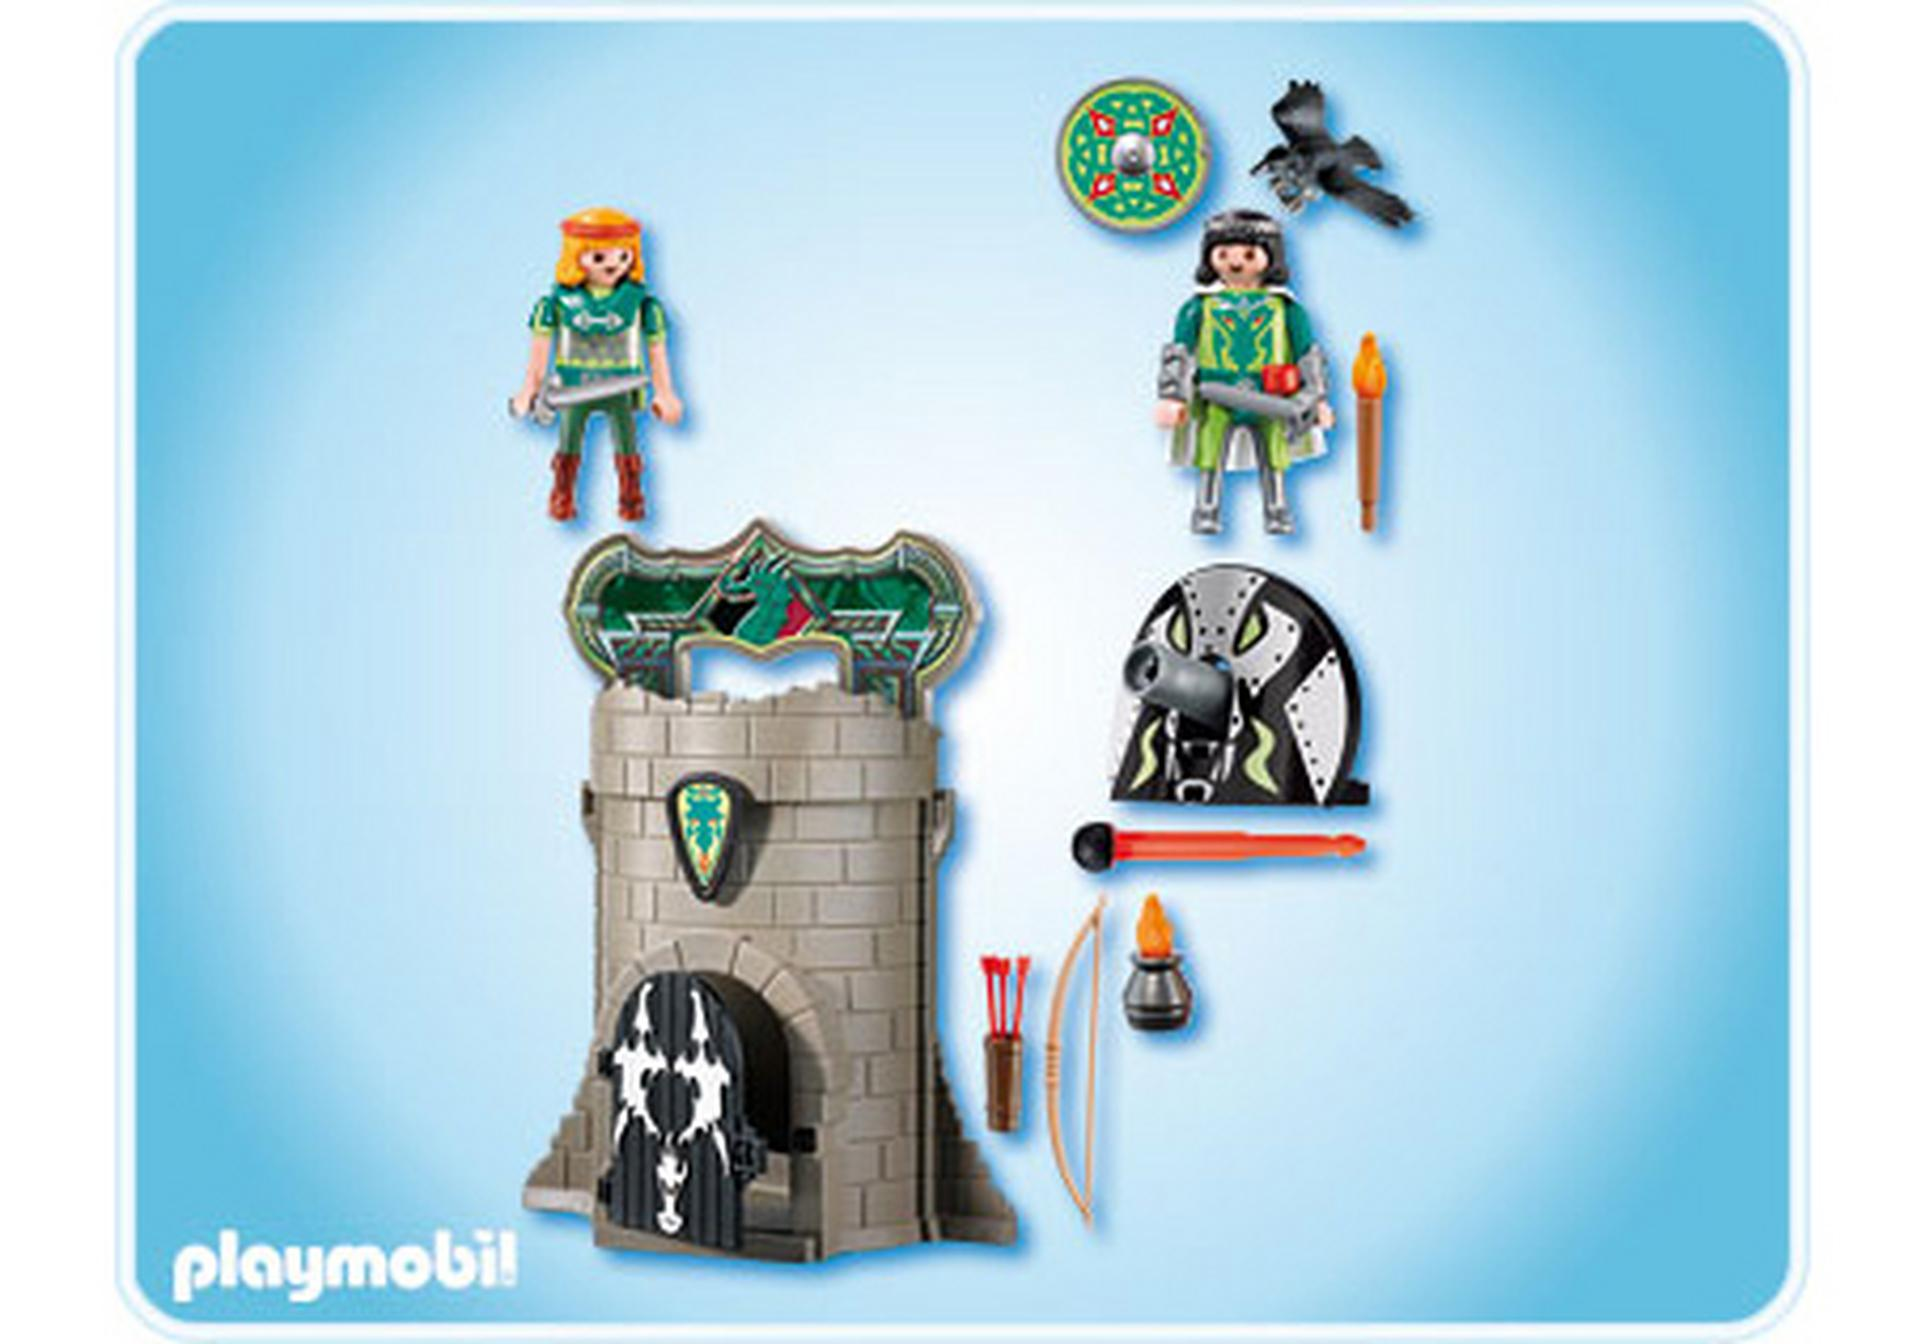 Tour des chevaliers des dragons verts 4775 a playmobil - Chateau chevalier playmobil ...